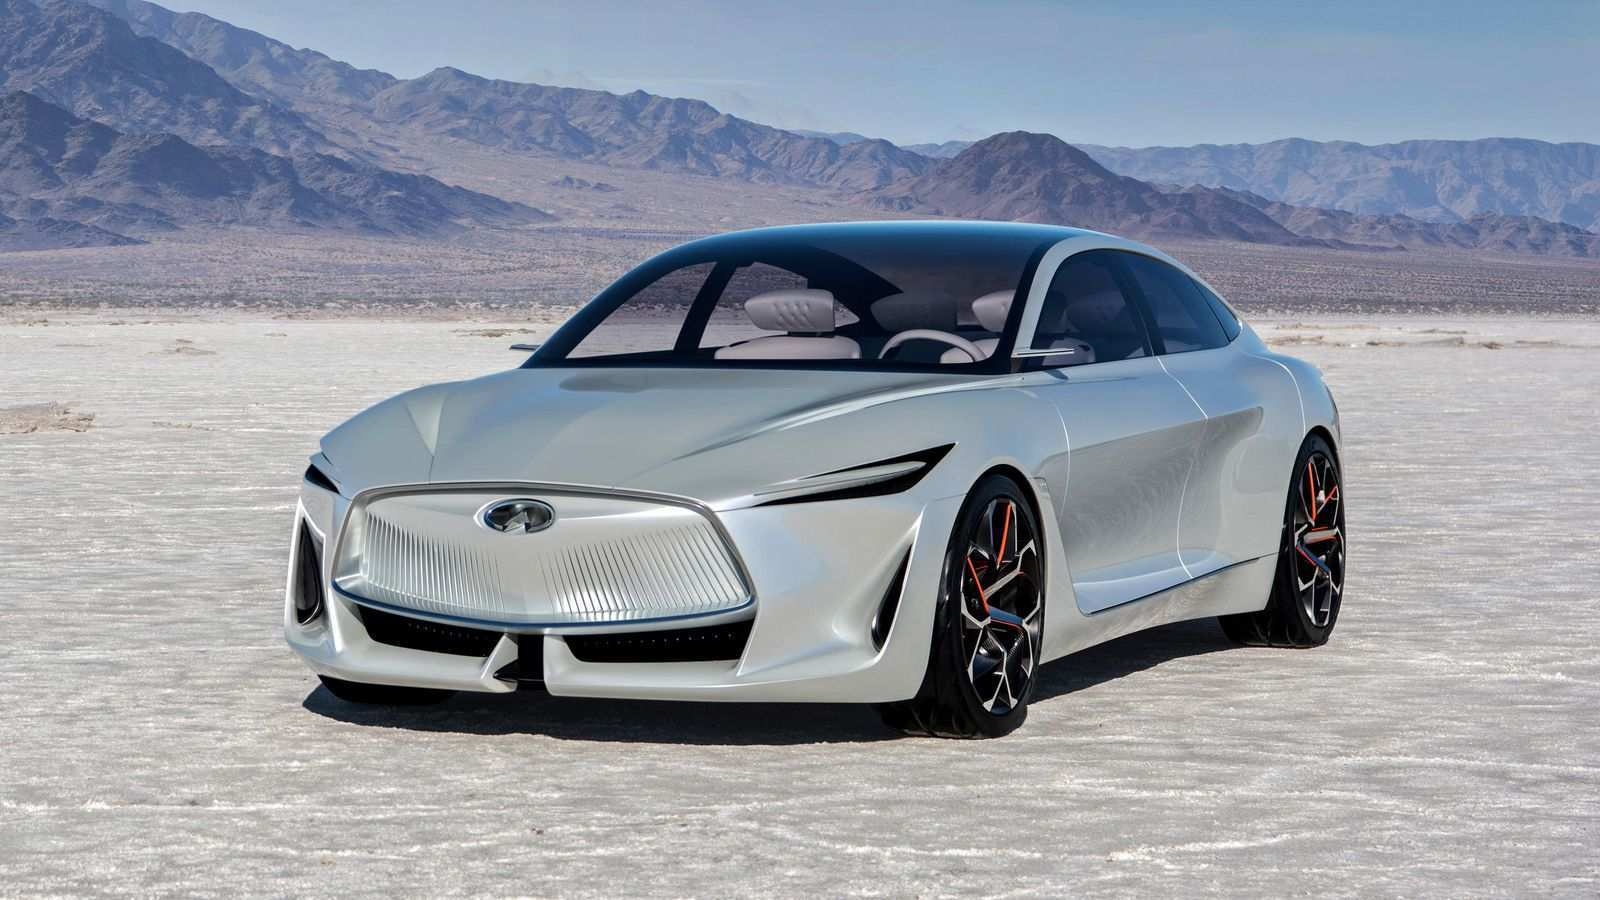 30 Gallery of 2020 Infiniti New Concept History for 2020 Infiniti New Concept